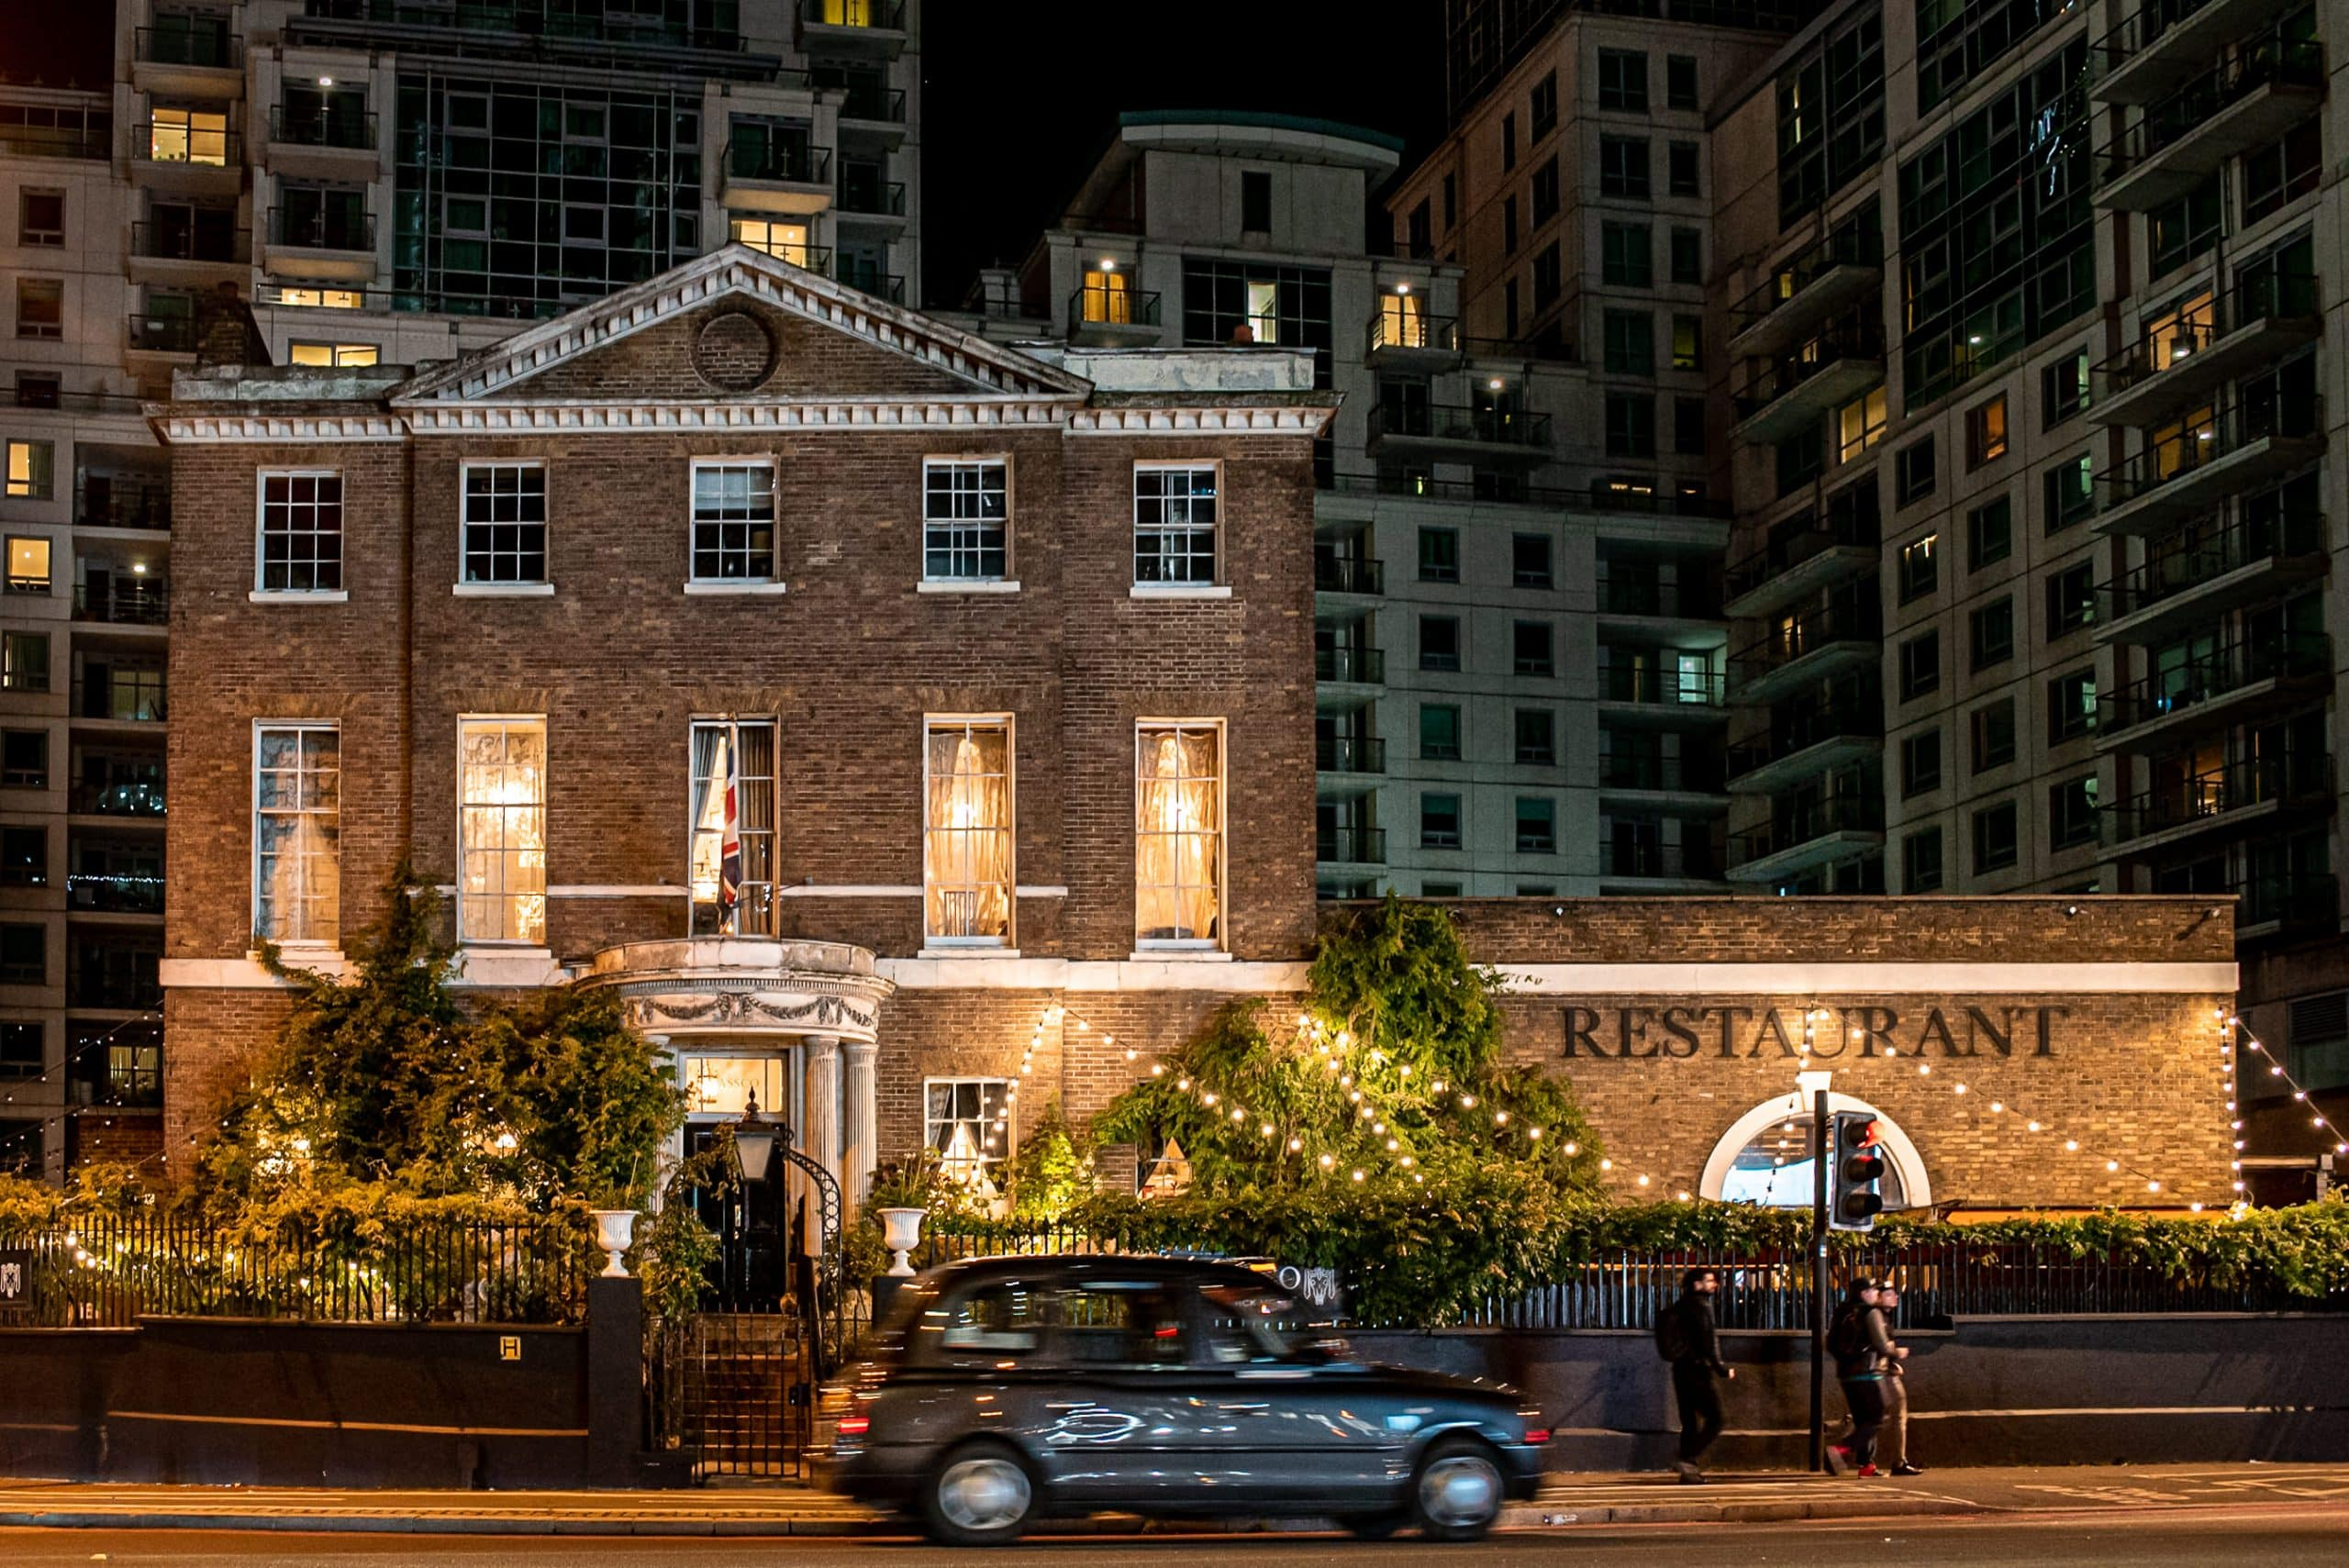 A photo of the outside of Lassco Brunswick House Wedding venue in London at night